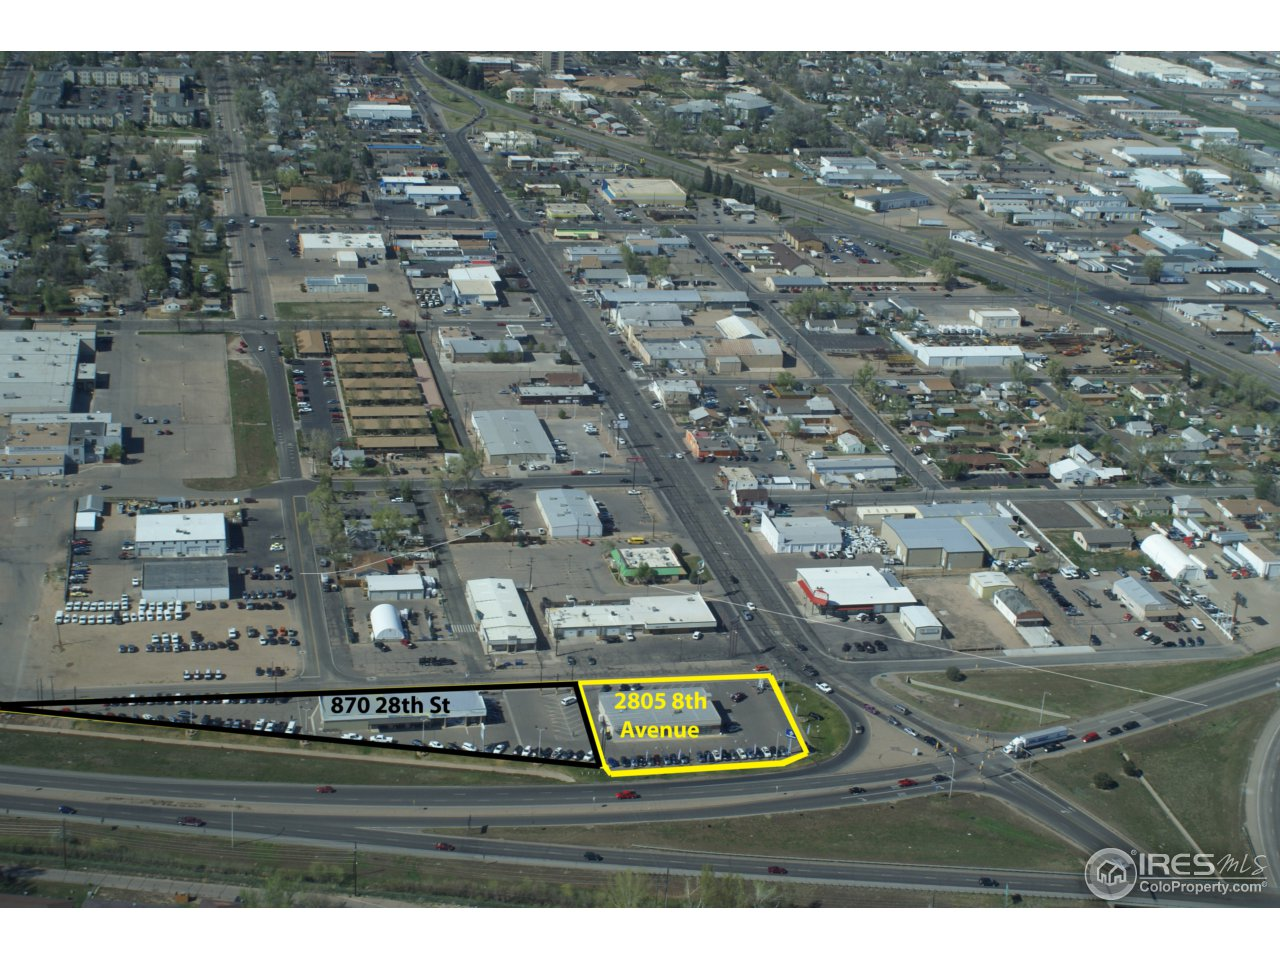 2805 8th Ave, Greeley, CO 80631